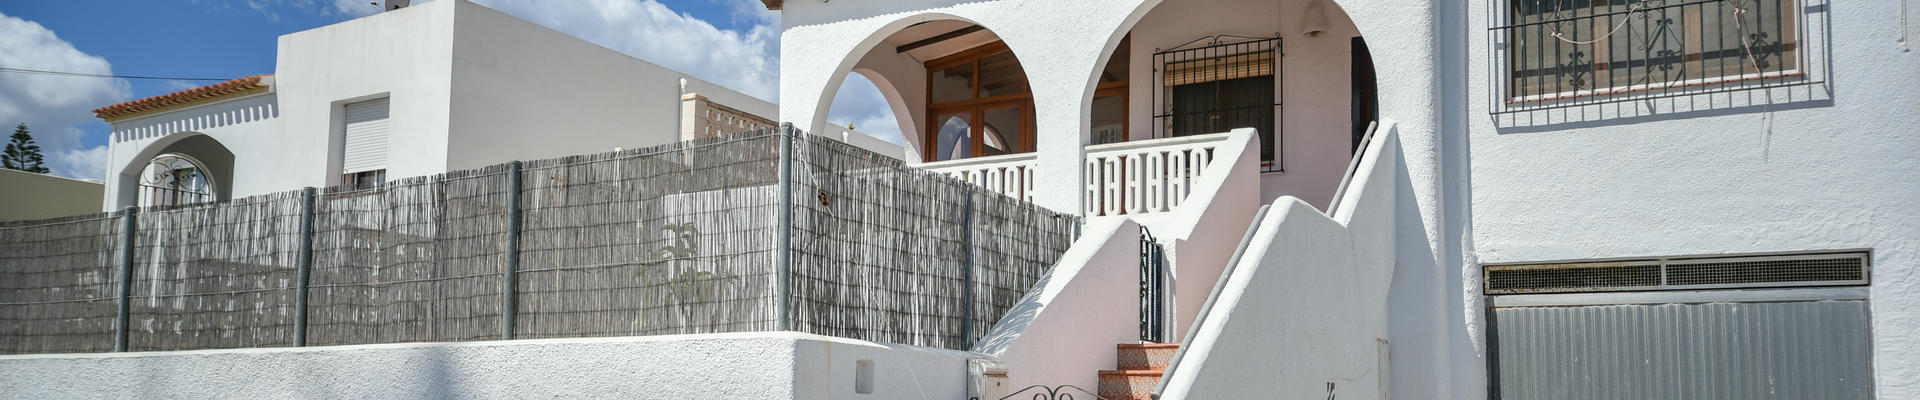 LV750: 2 Bedroom Townhouse for Sale